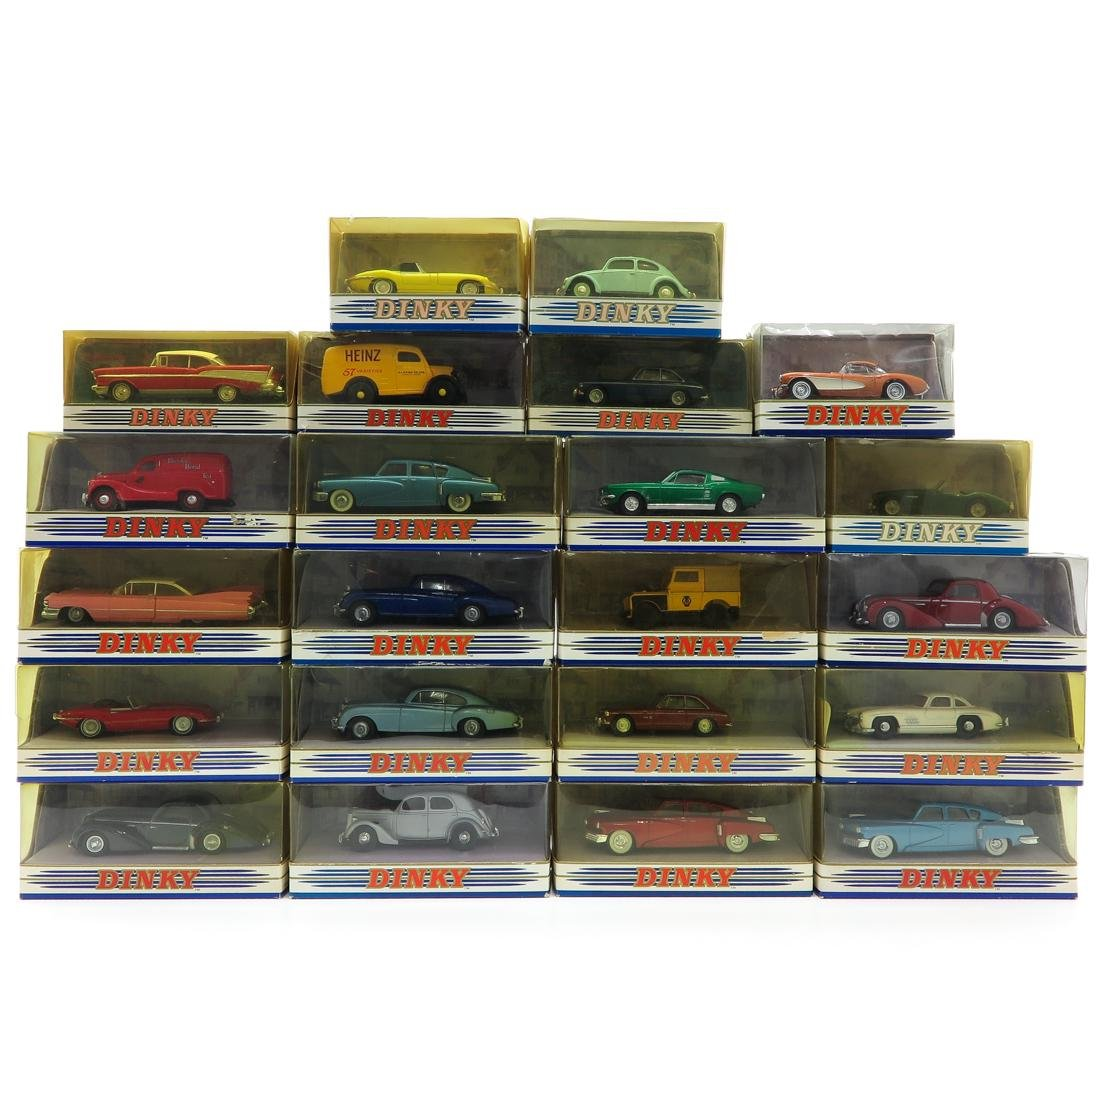 Lot of 22 Vintage Dinky Toy Cars